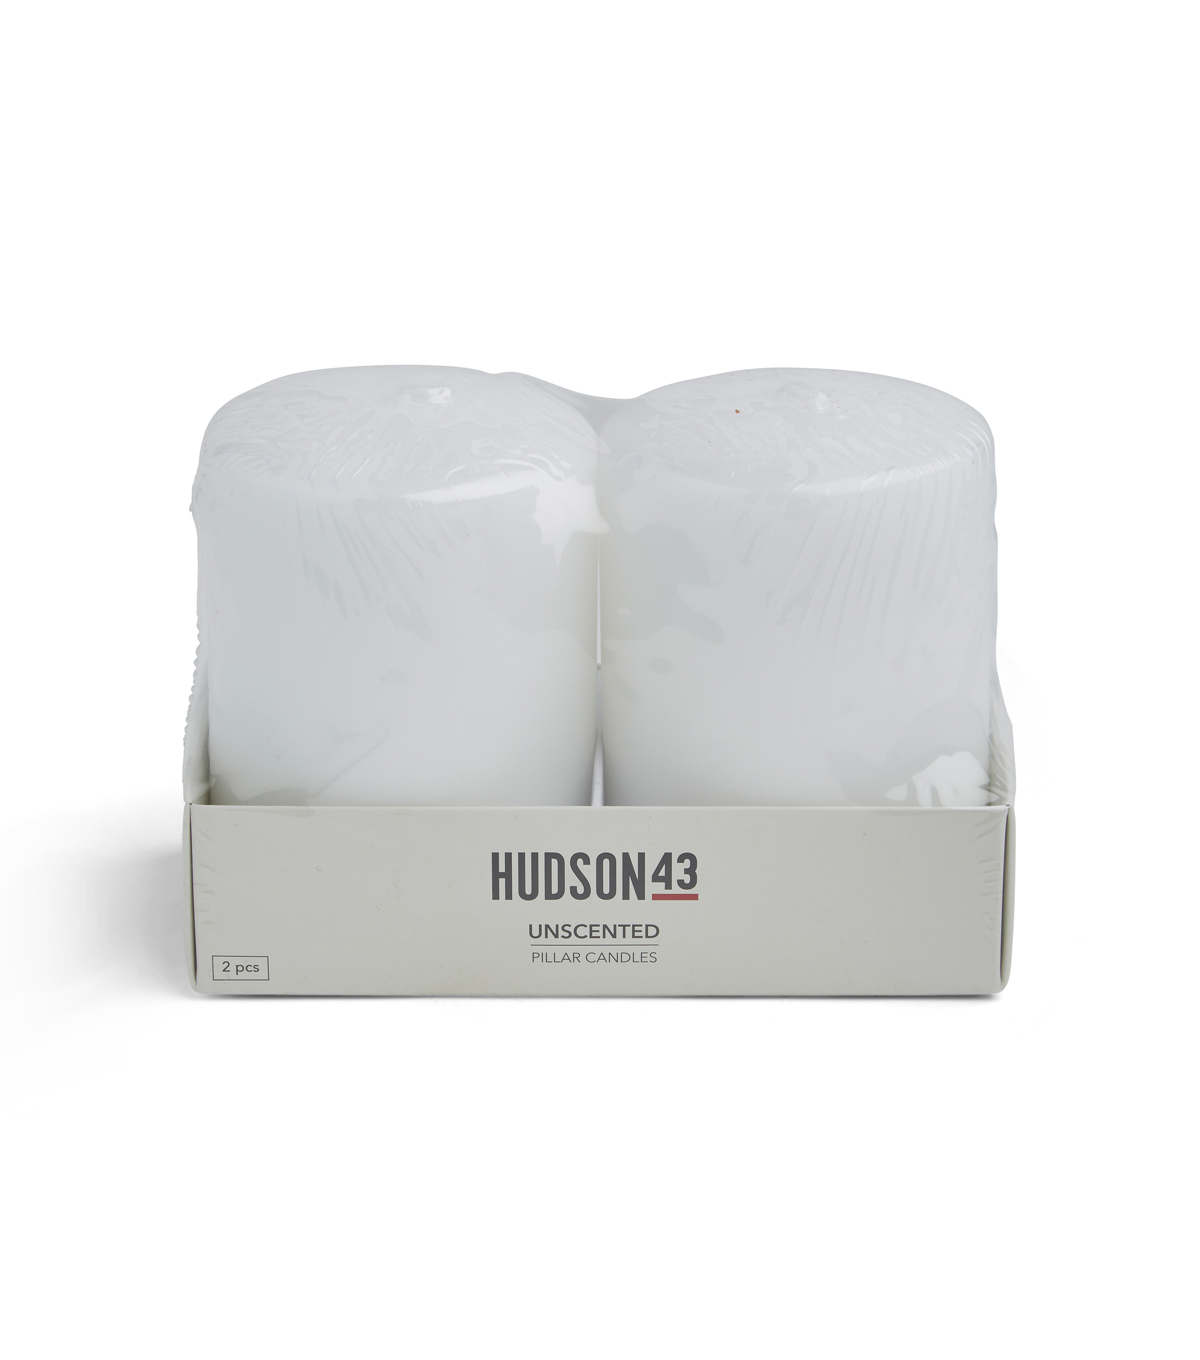 Hudson 43™ Candle & Light Collection 2pk 3\u0022x4\u0022 Unscented Pillar Candles-White